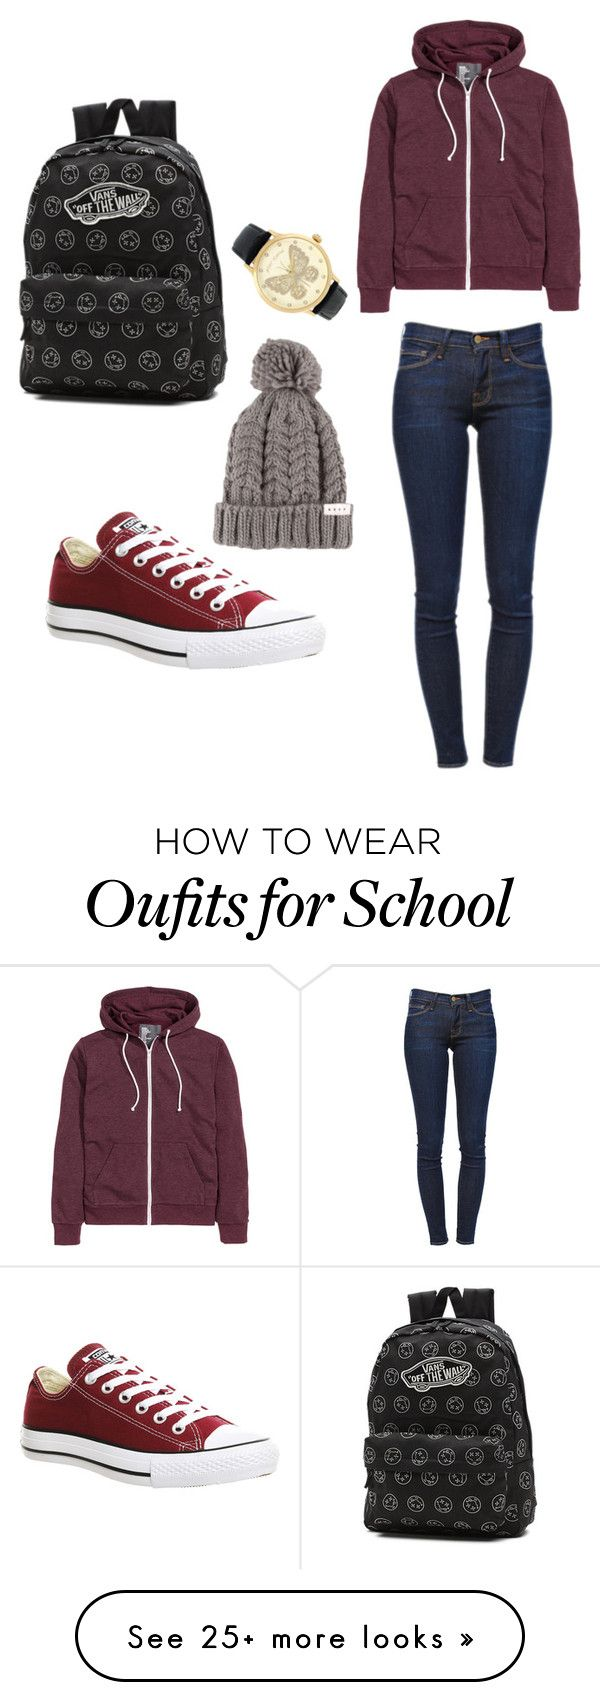 """Maroon Outfit for School"" by casandra-ramos on Polyvore featuring Mode, Frame Denim, Converse, Vans und Betsey Johnson"